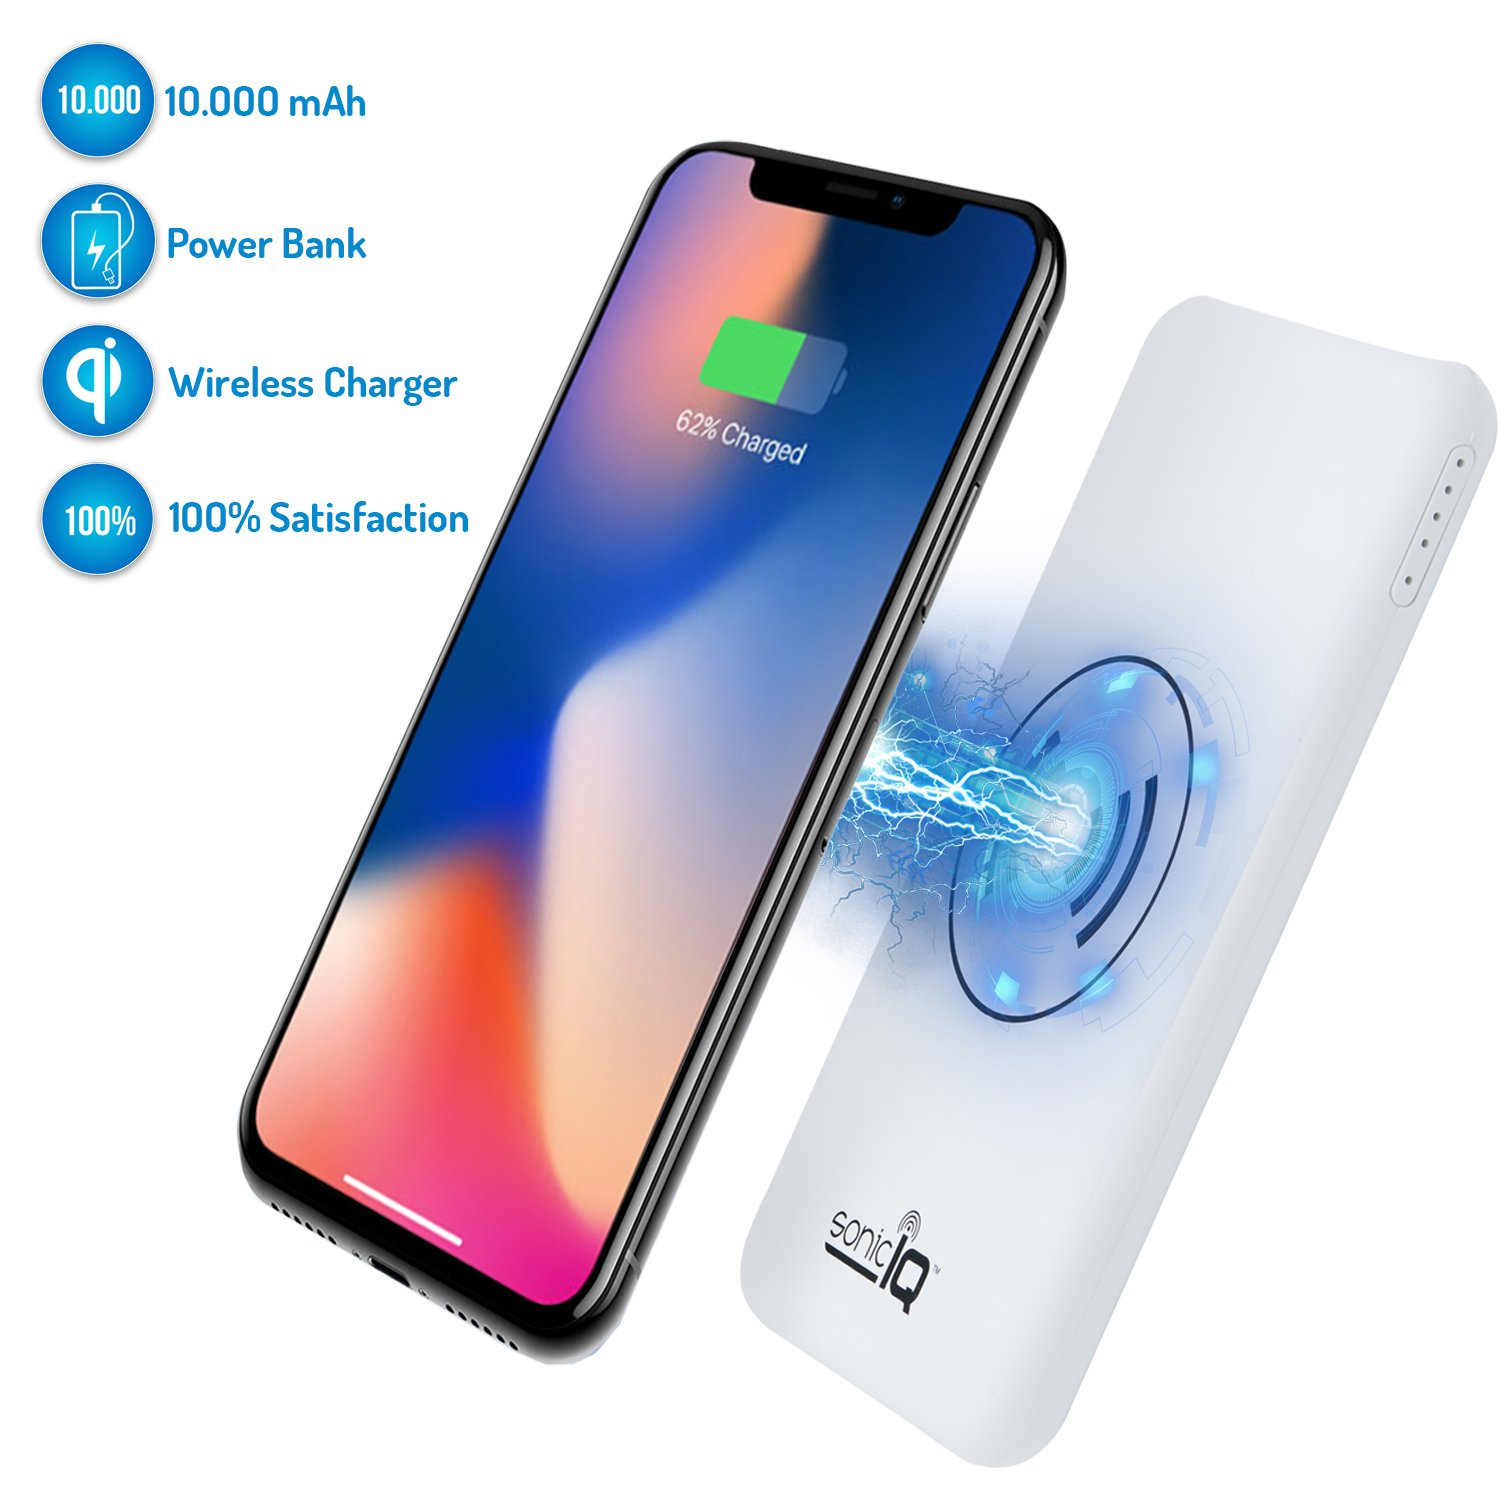 Qi Fast Wireless Charger Iphone X 10000 Mah Portable Power Bank As 10000mah 2 In 1